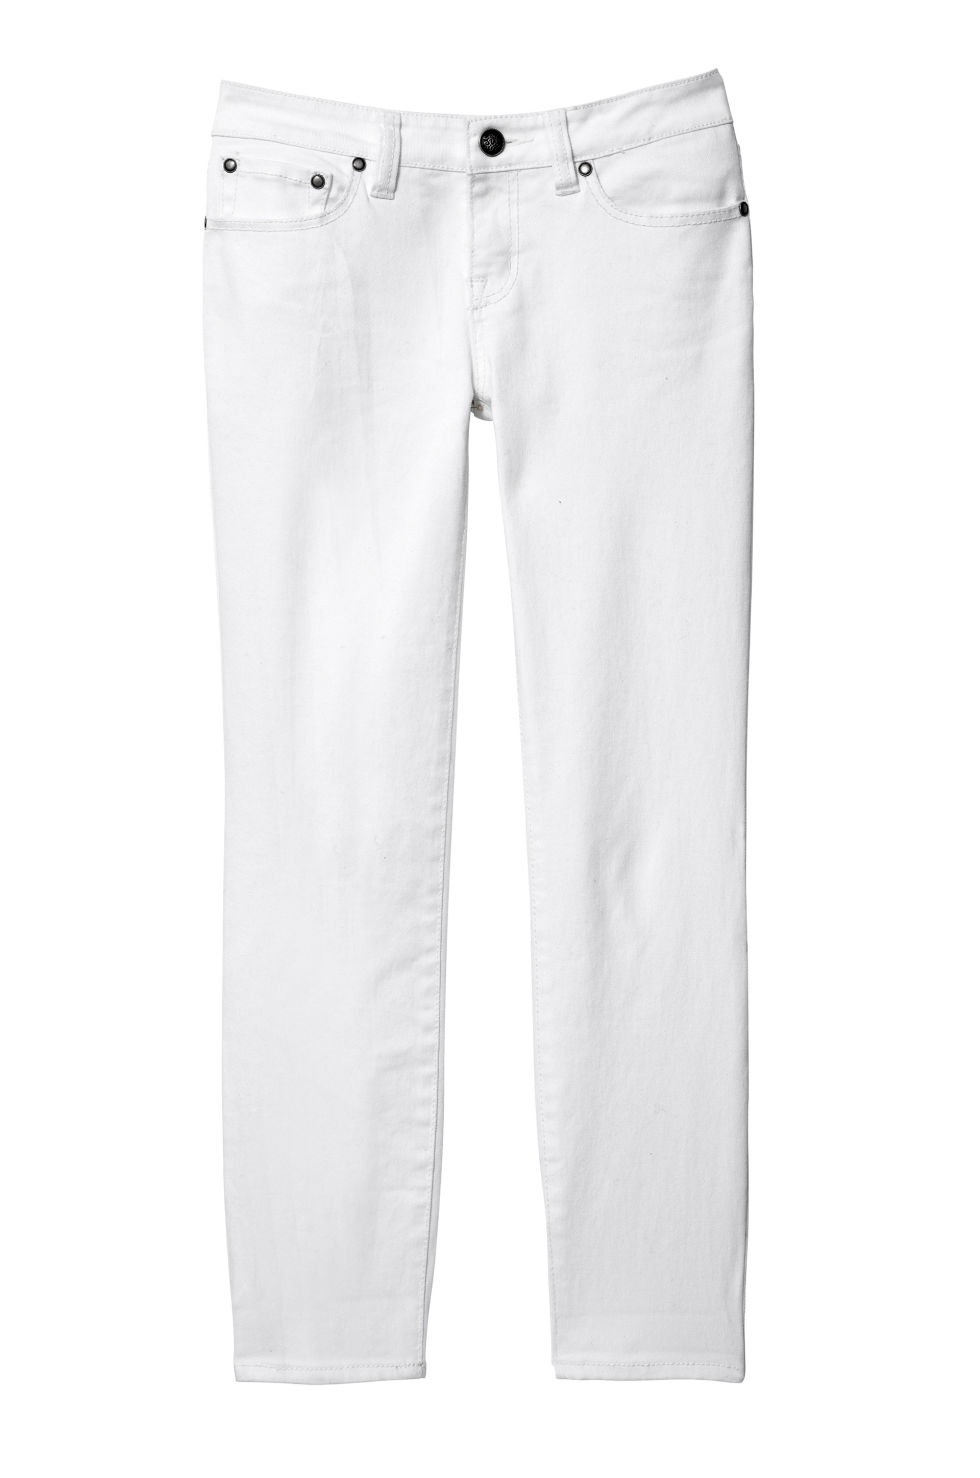 Most Flattering White Jeans